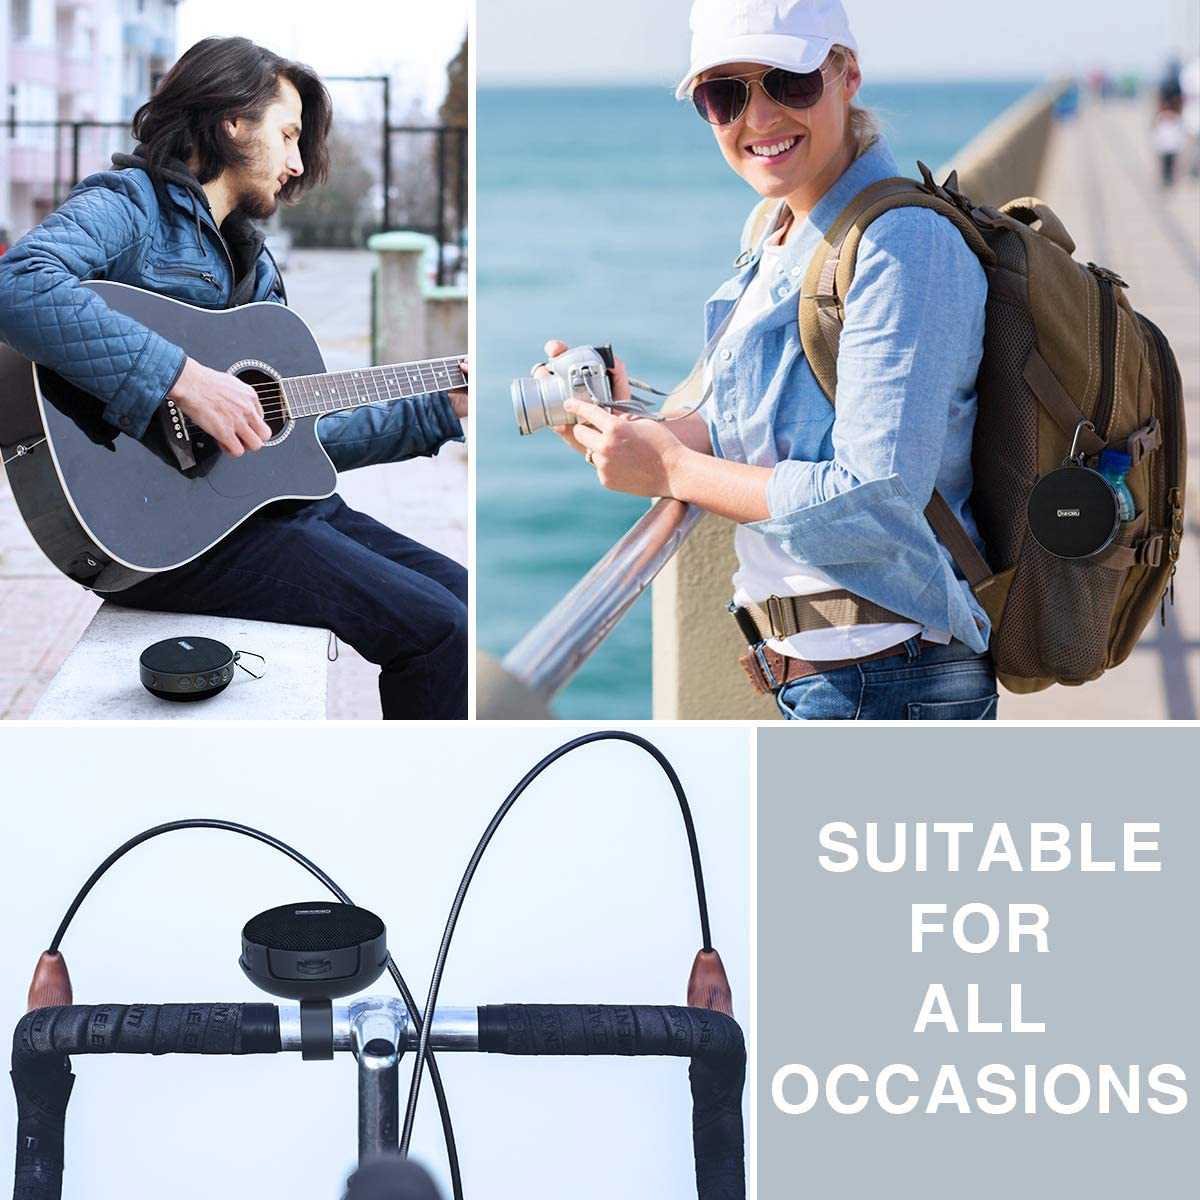 Onforu Portable Bluetooth Speaker for Bike Wireless Bicycle Speaker with Loud Sound Bluetooth 5.0 and 10h Play Time Hiking and Camping IPX7 Waterproof Mini Outdoor Speaker for Riding